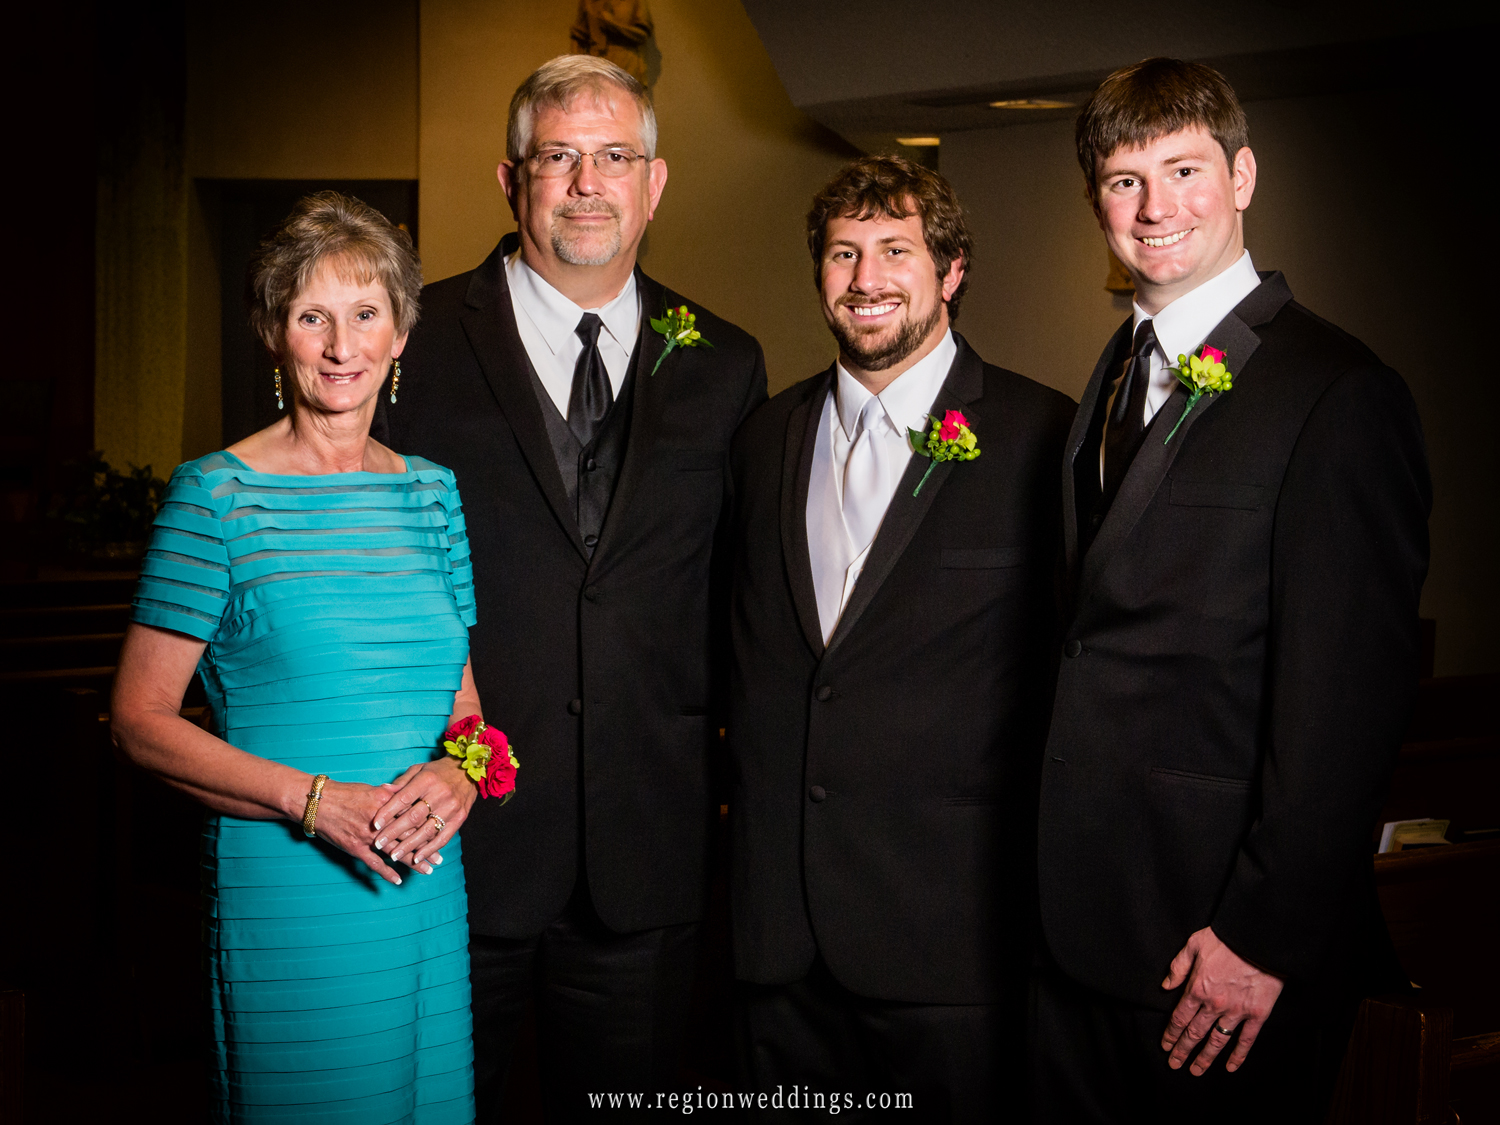 The groom poses for family wedding photos with his parents and brother.